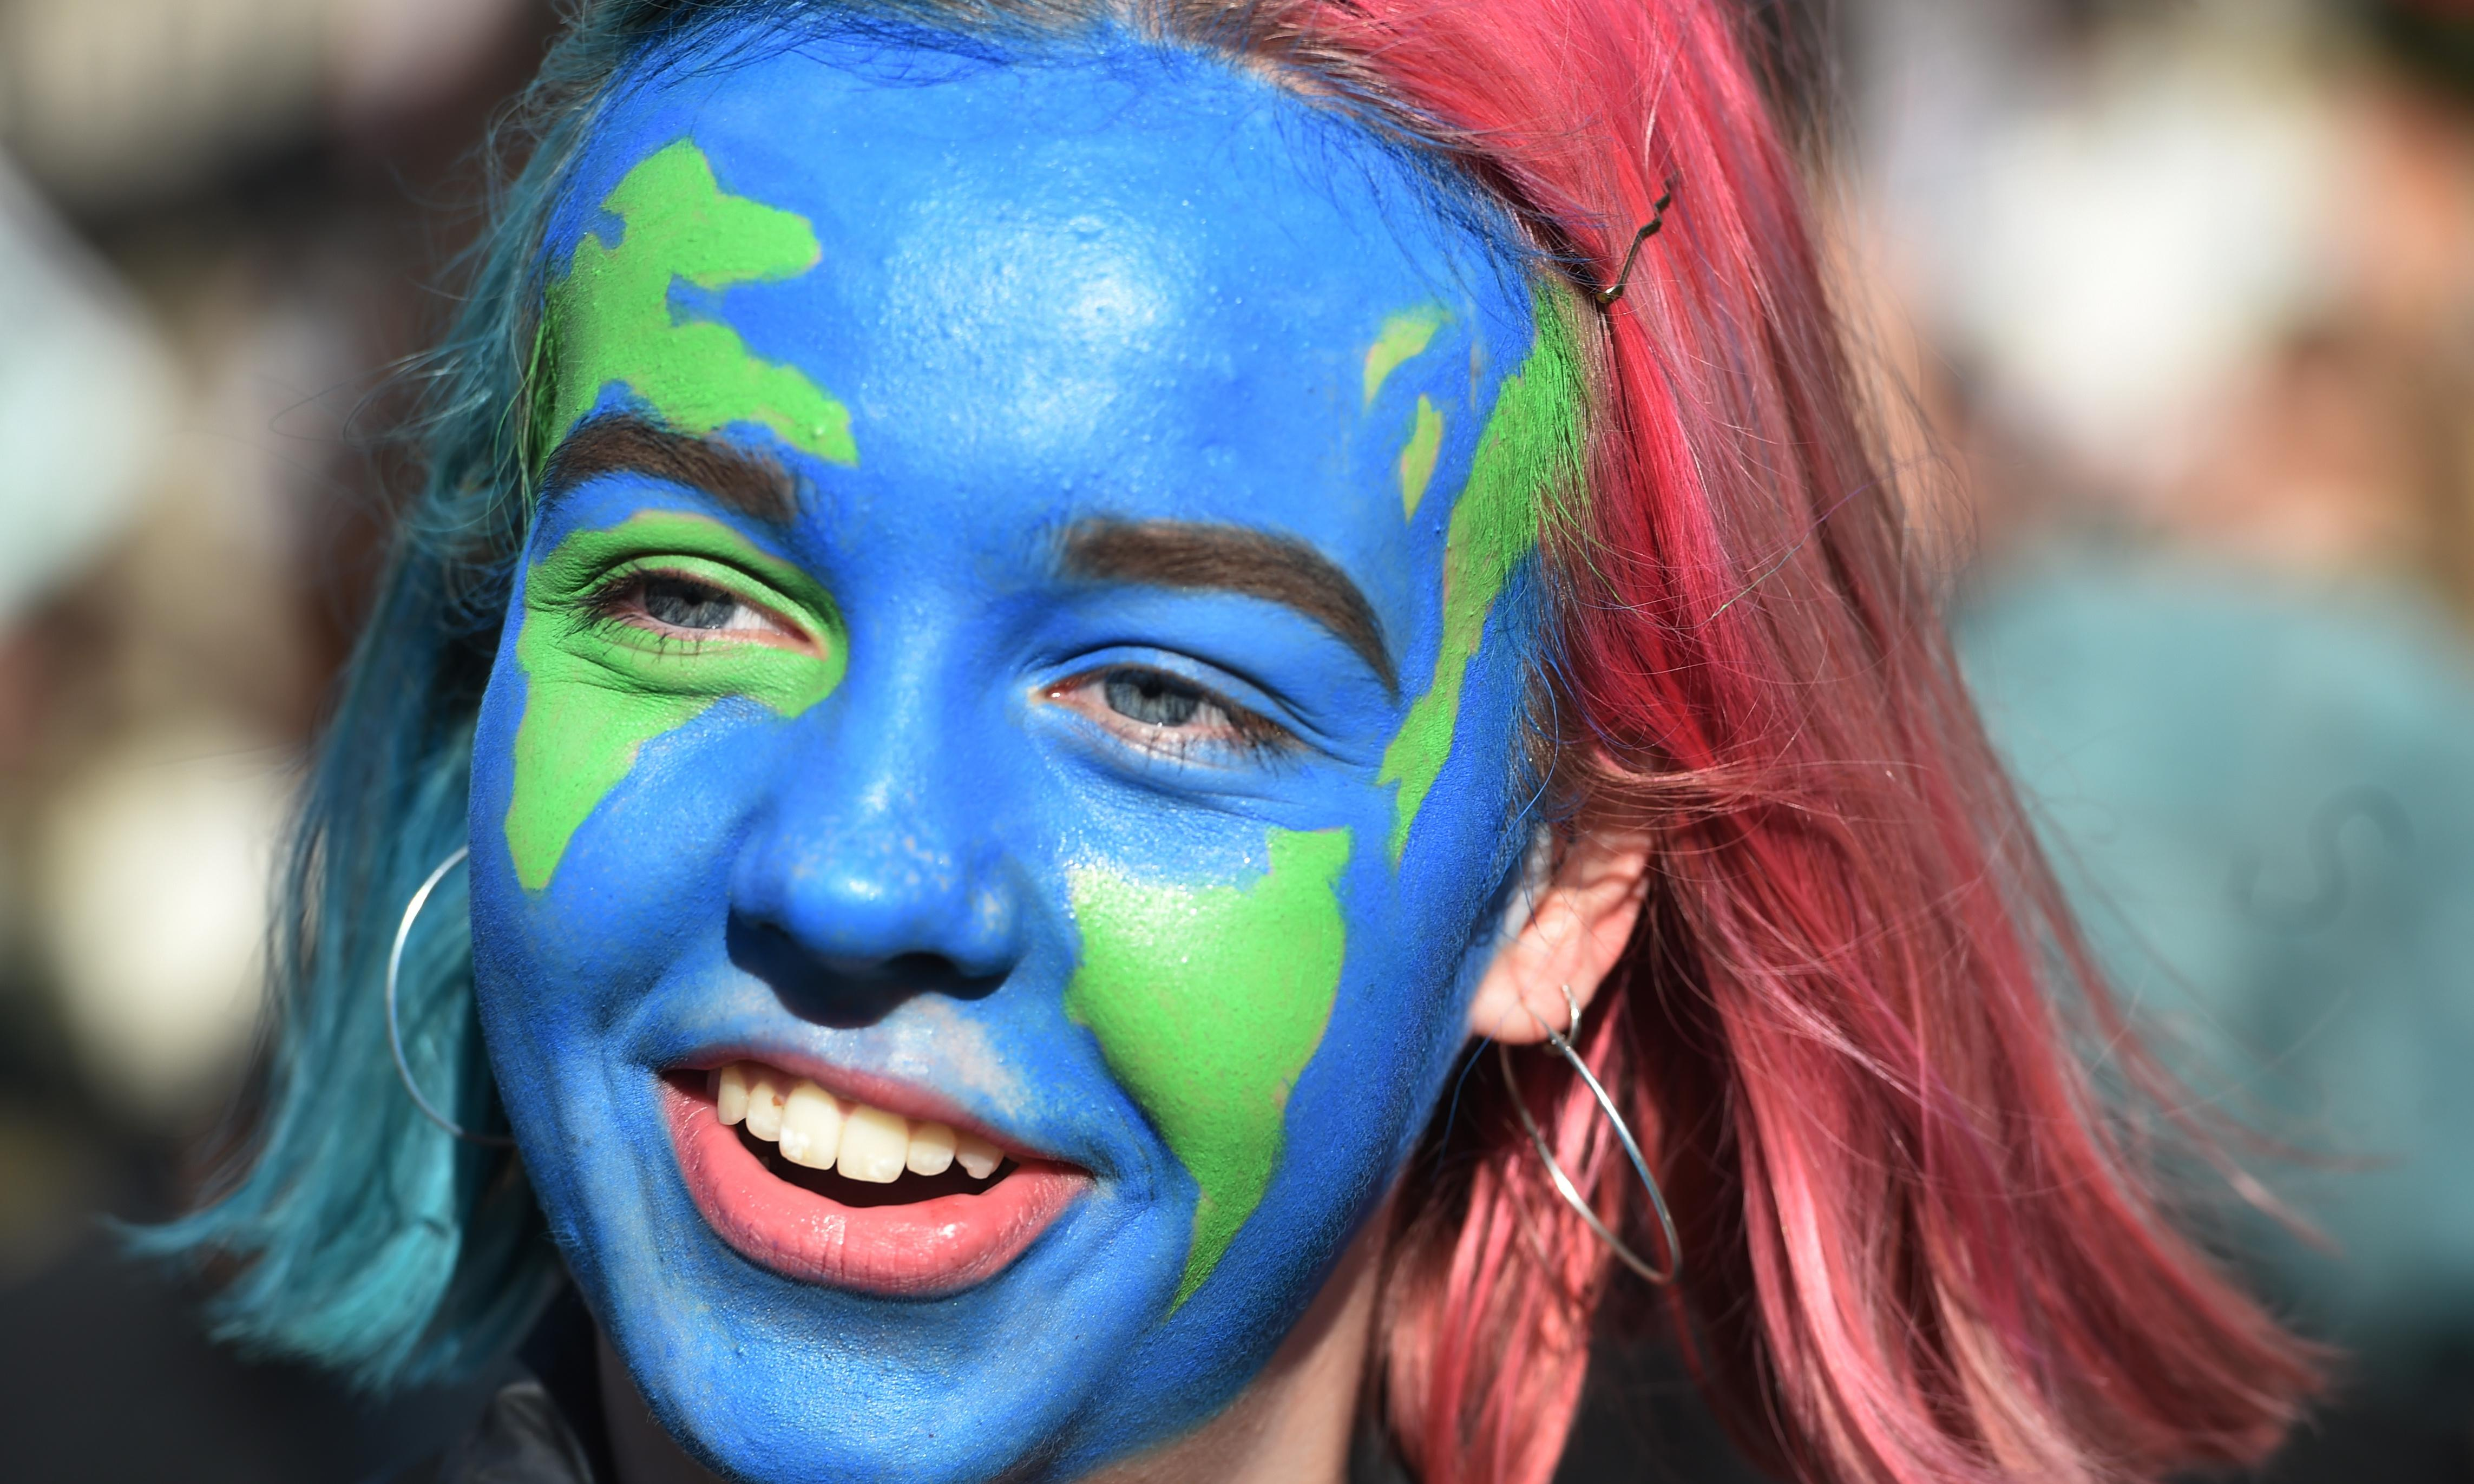 Young climate strikers can win their fight. We must all help